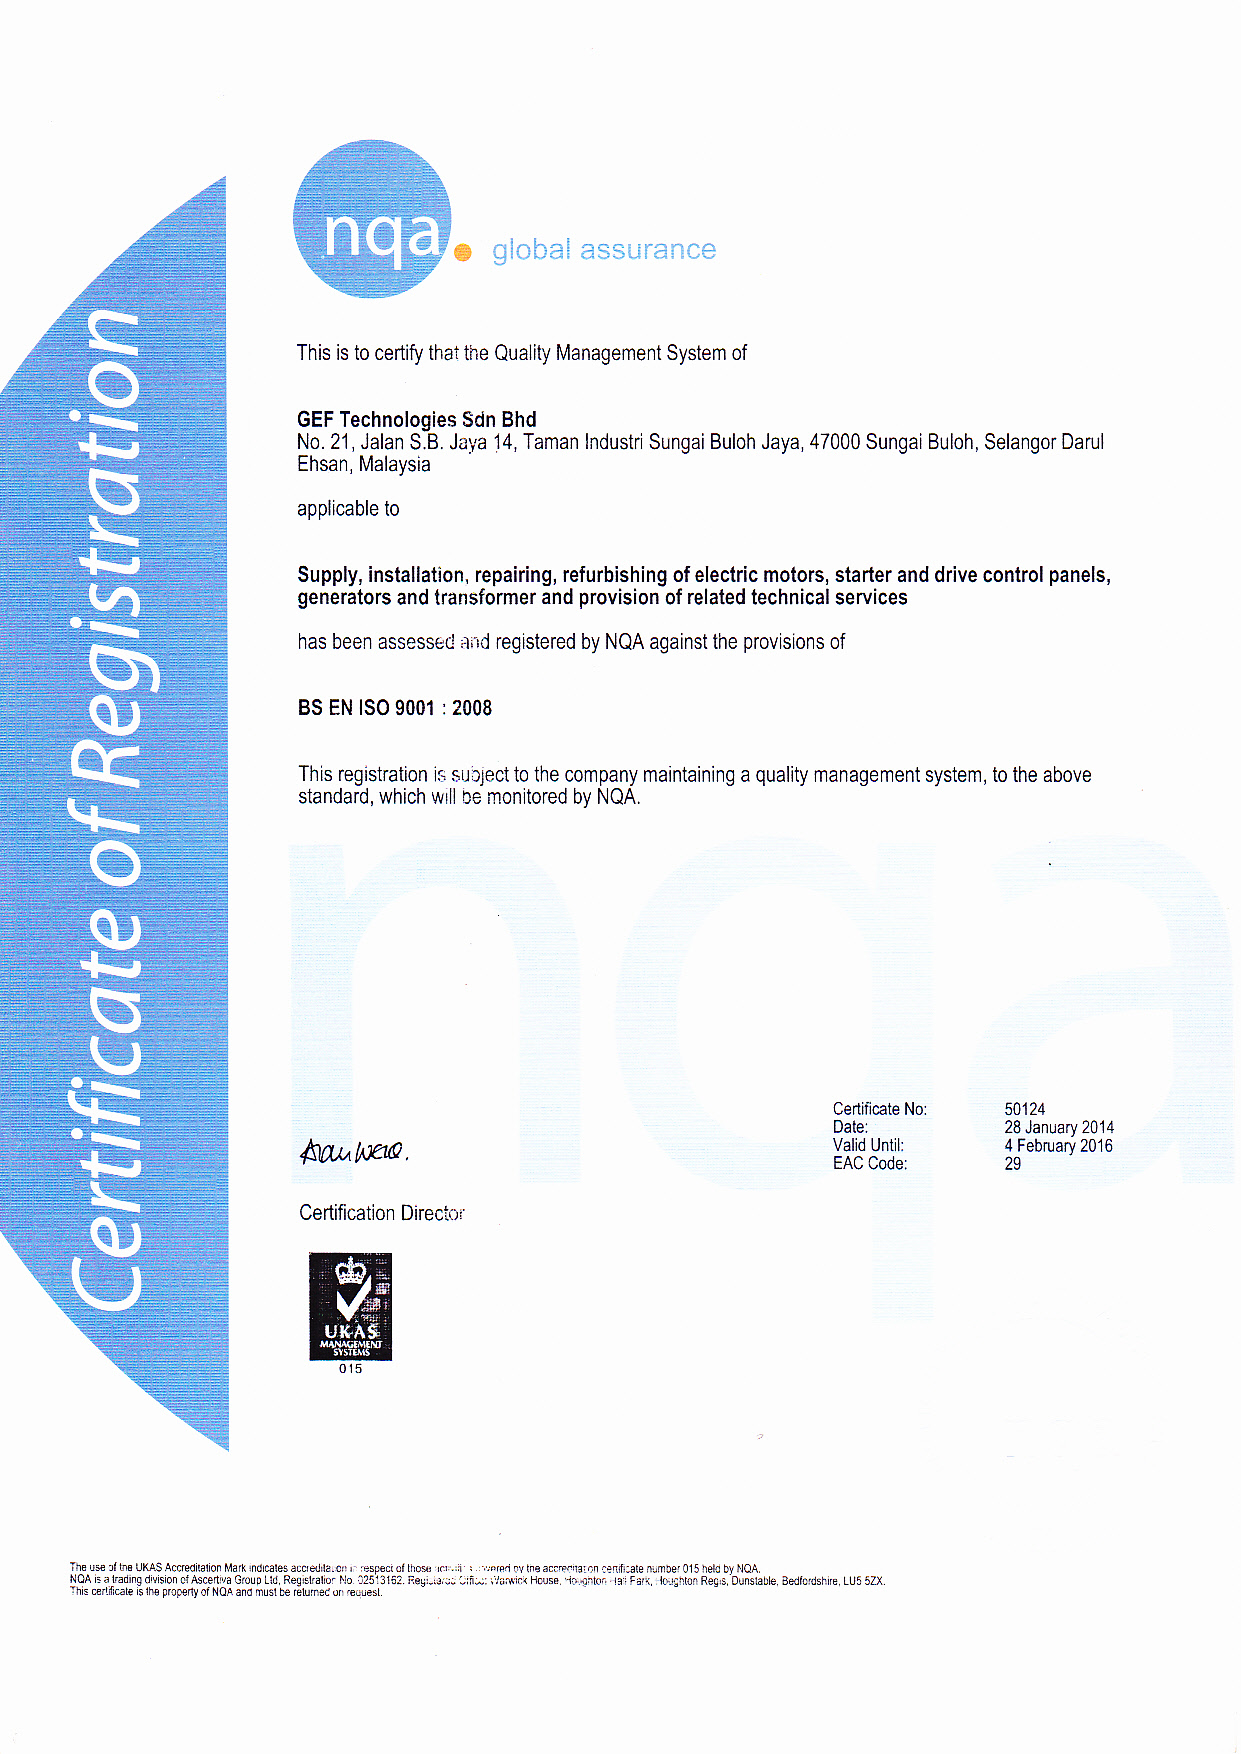 The International Certification Network Certificate